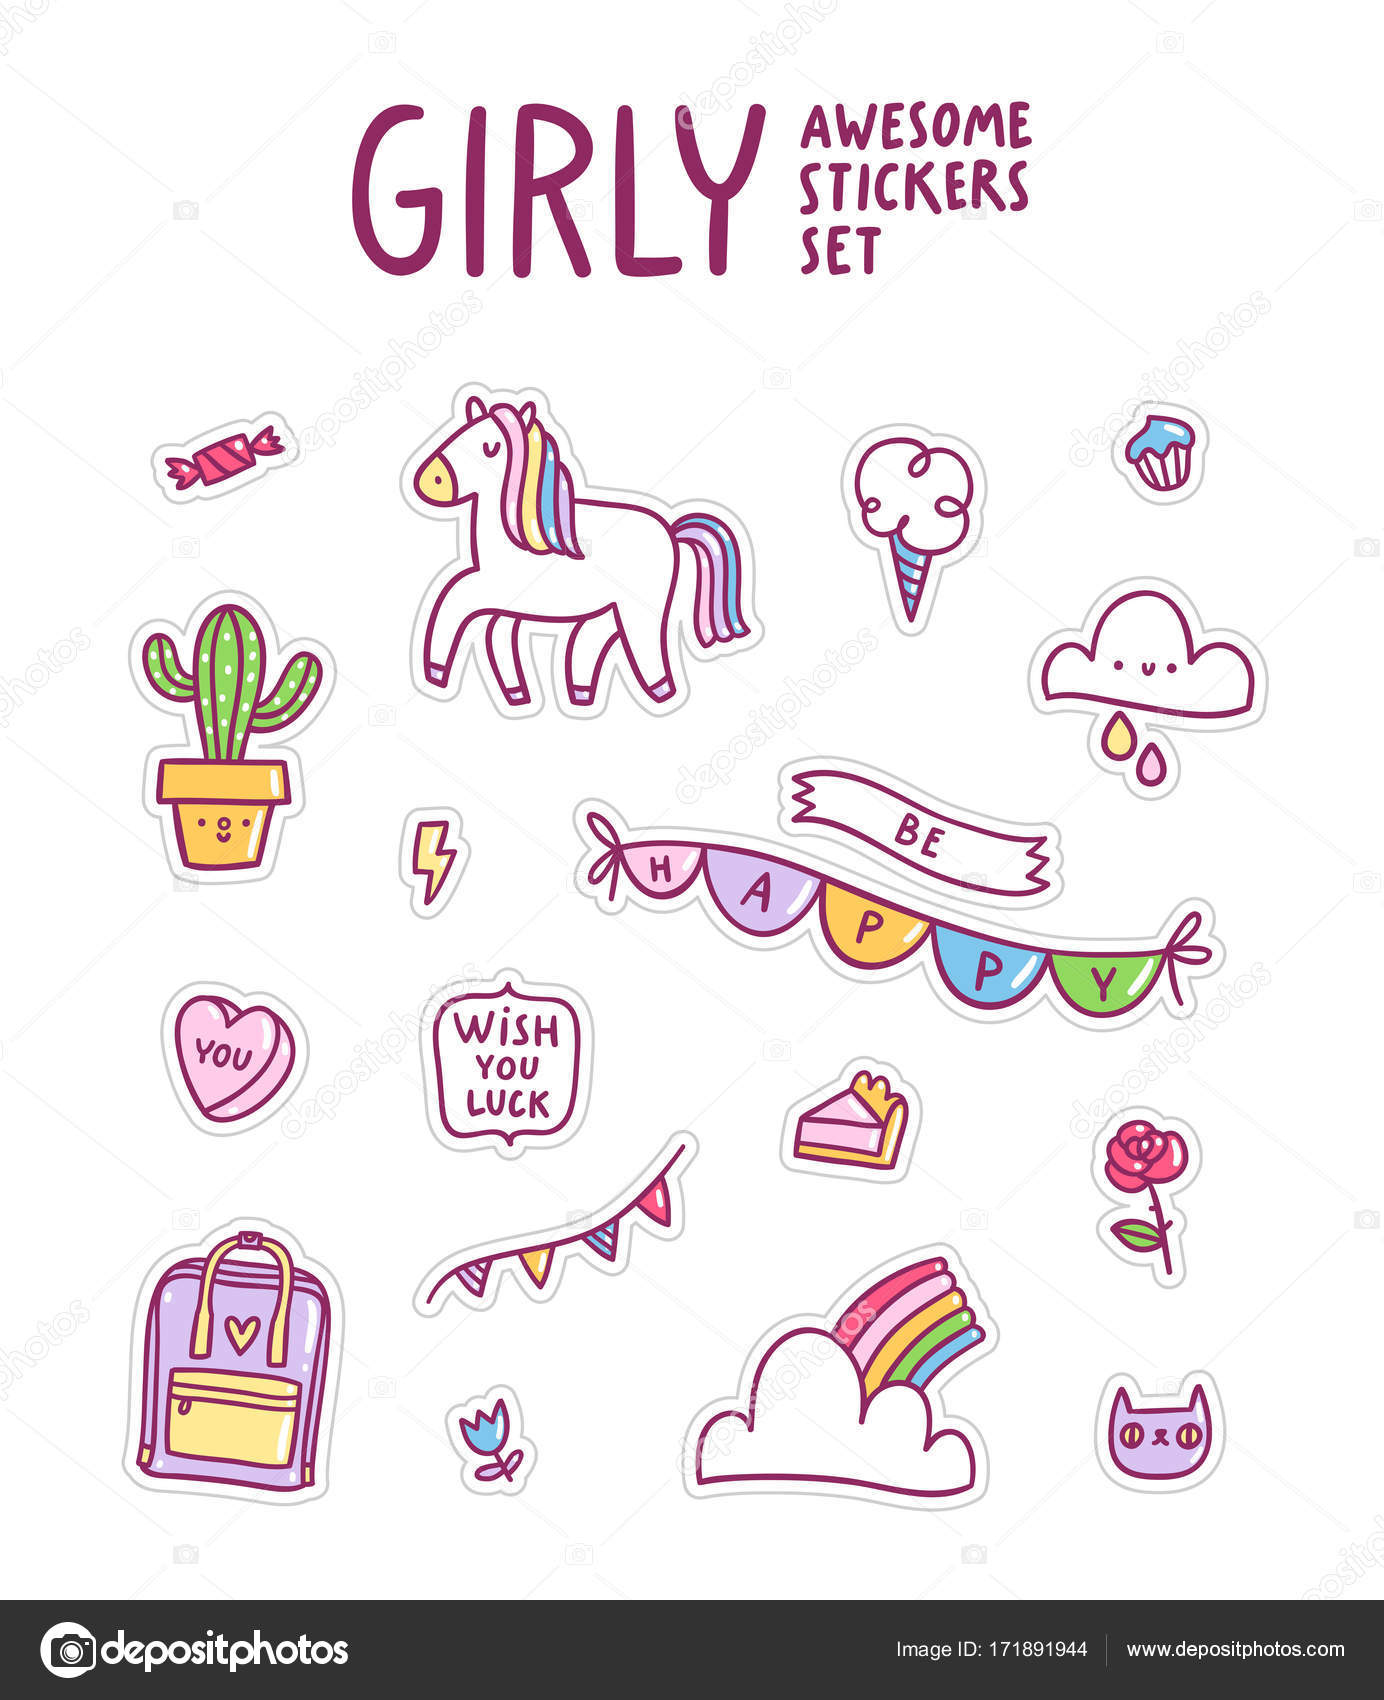 Girly awesome sticker set stock vector